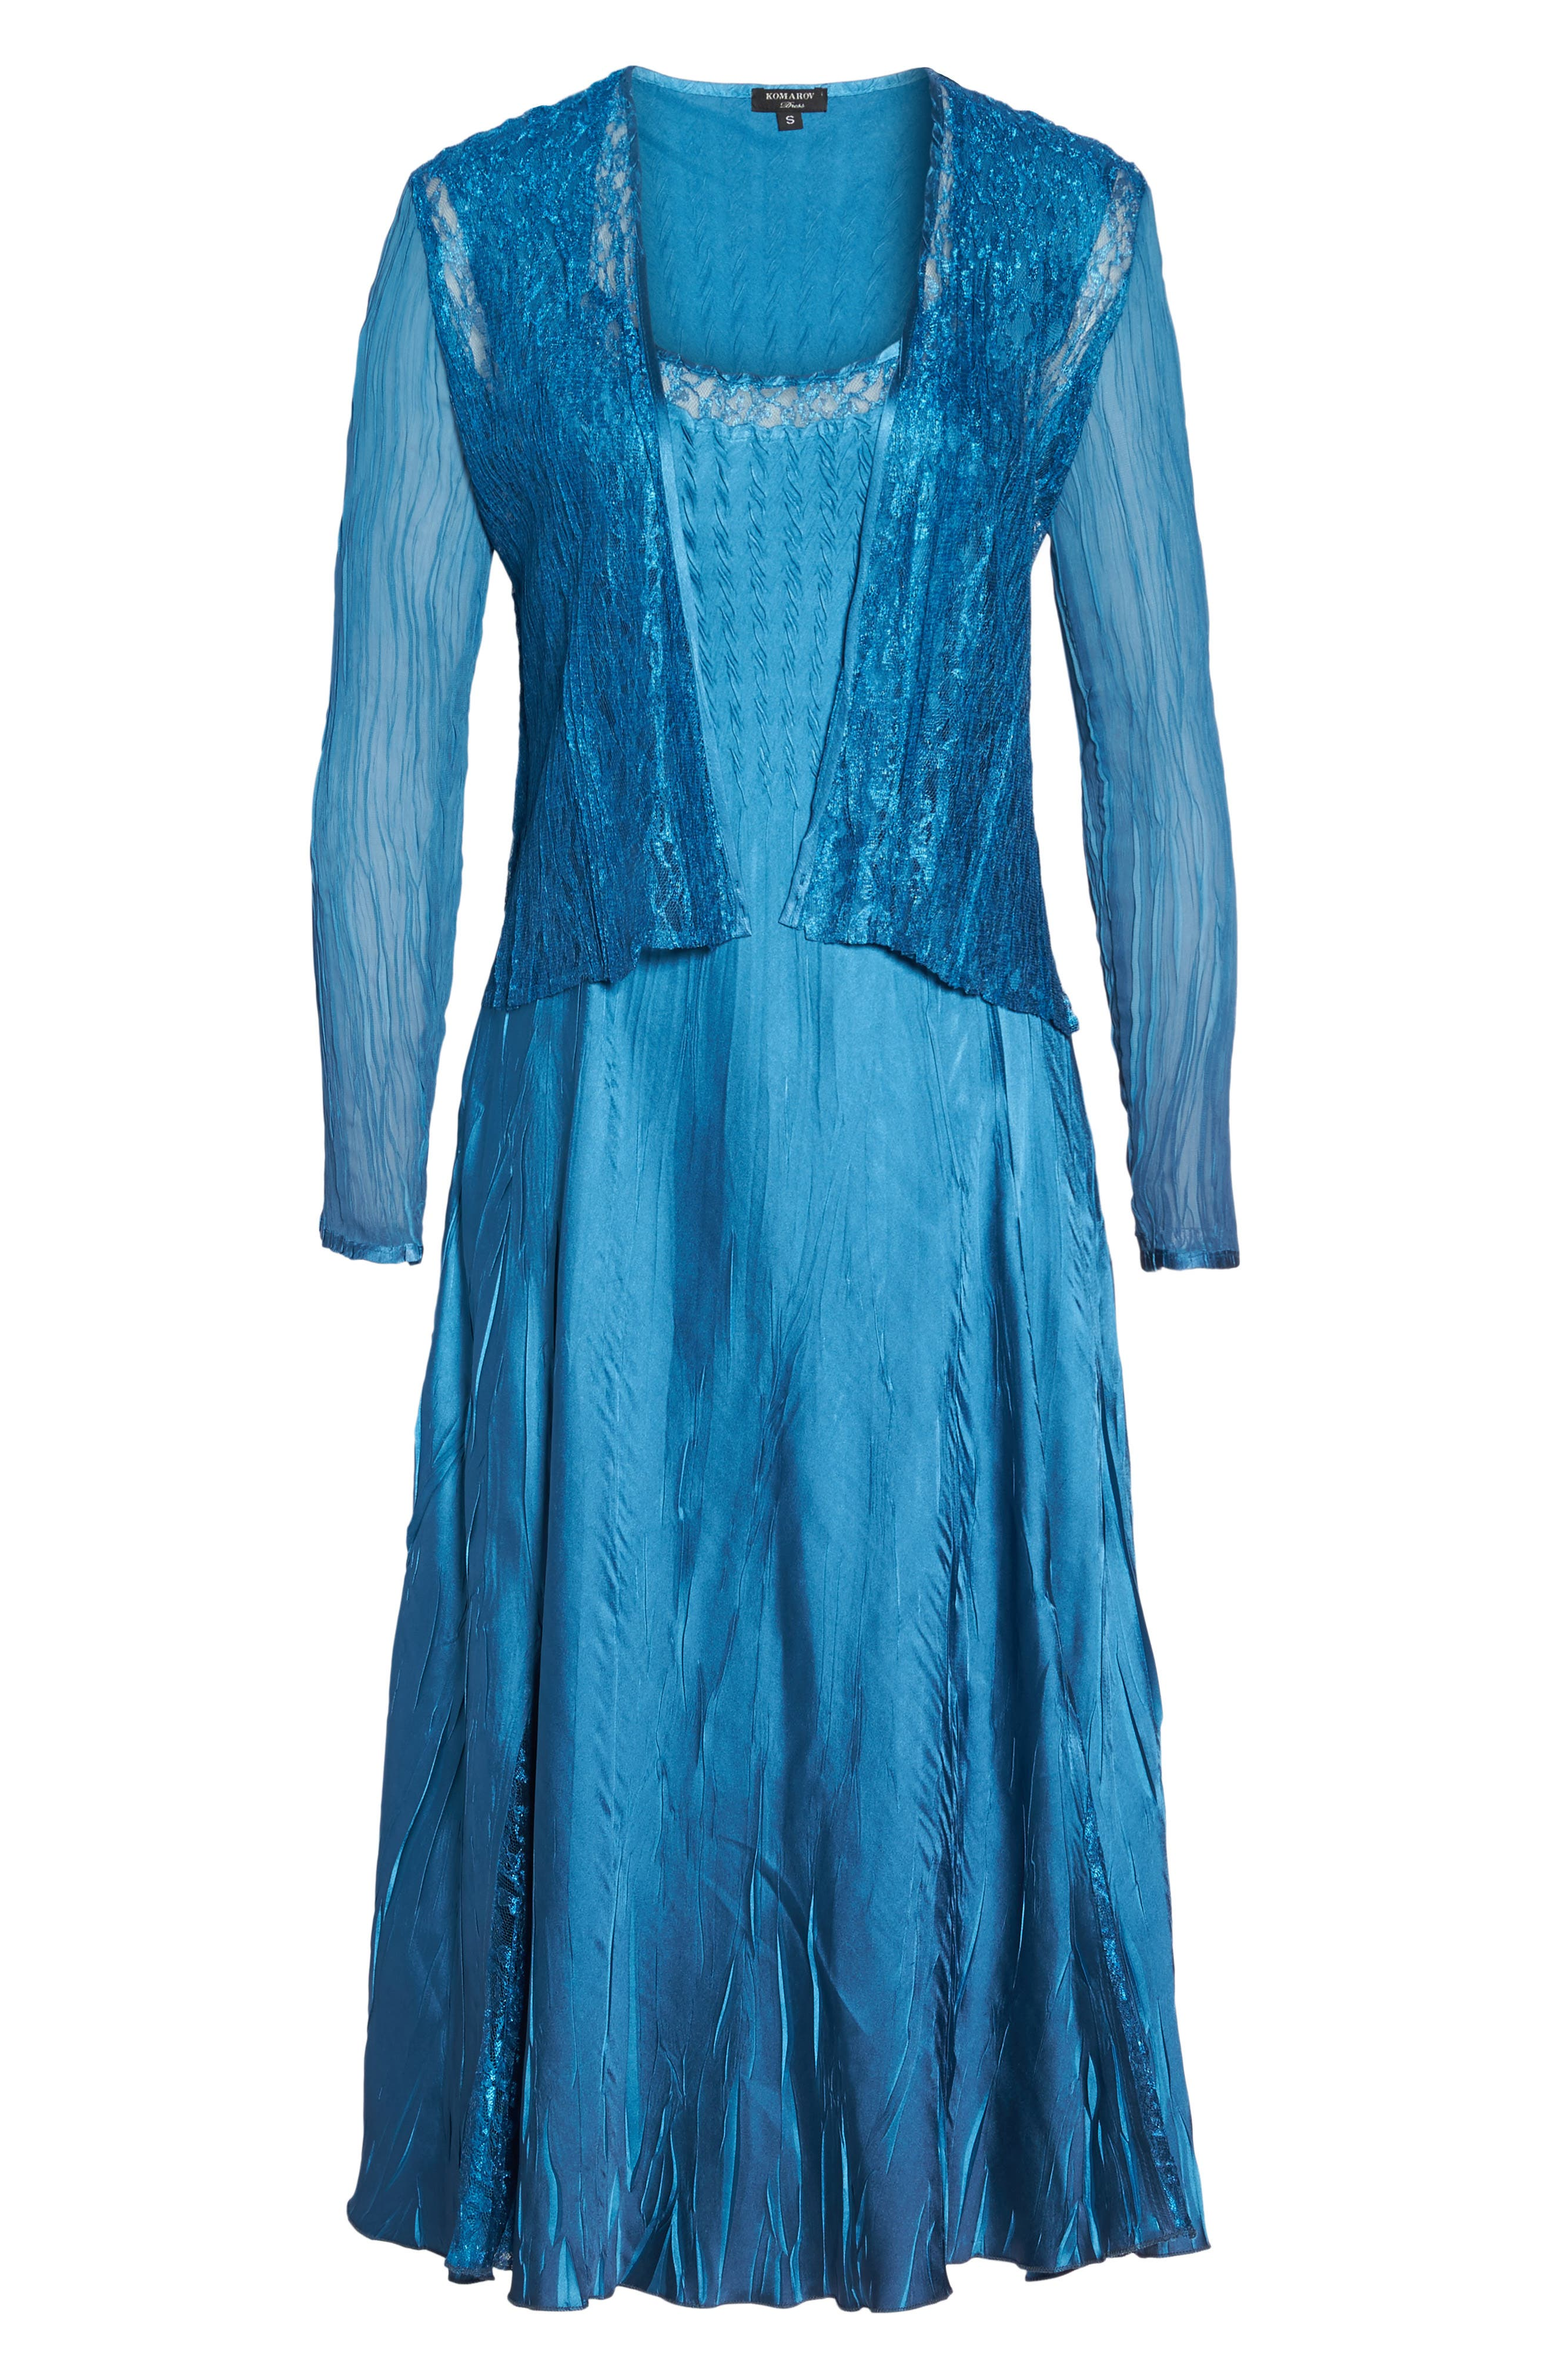 Lace & Charmeuse Dress with Jacket,                             Alternate thumbnail 6, color,                             407